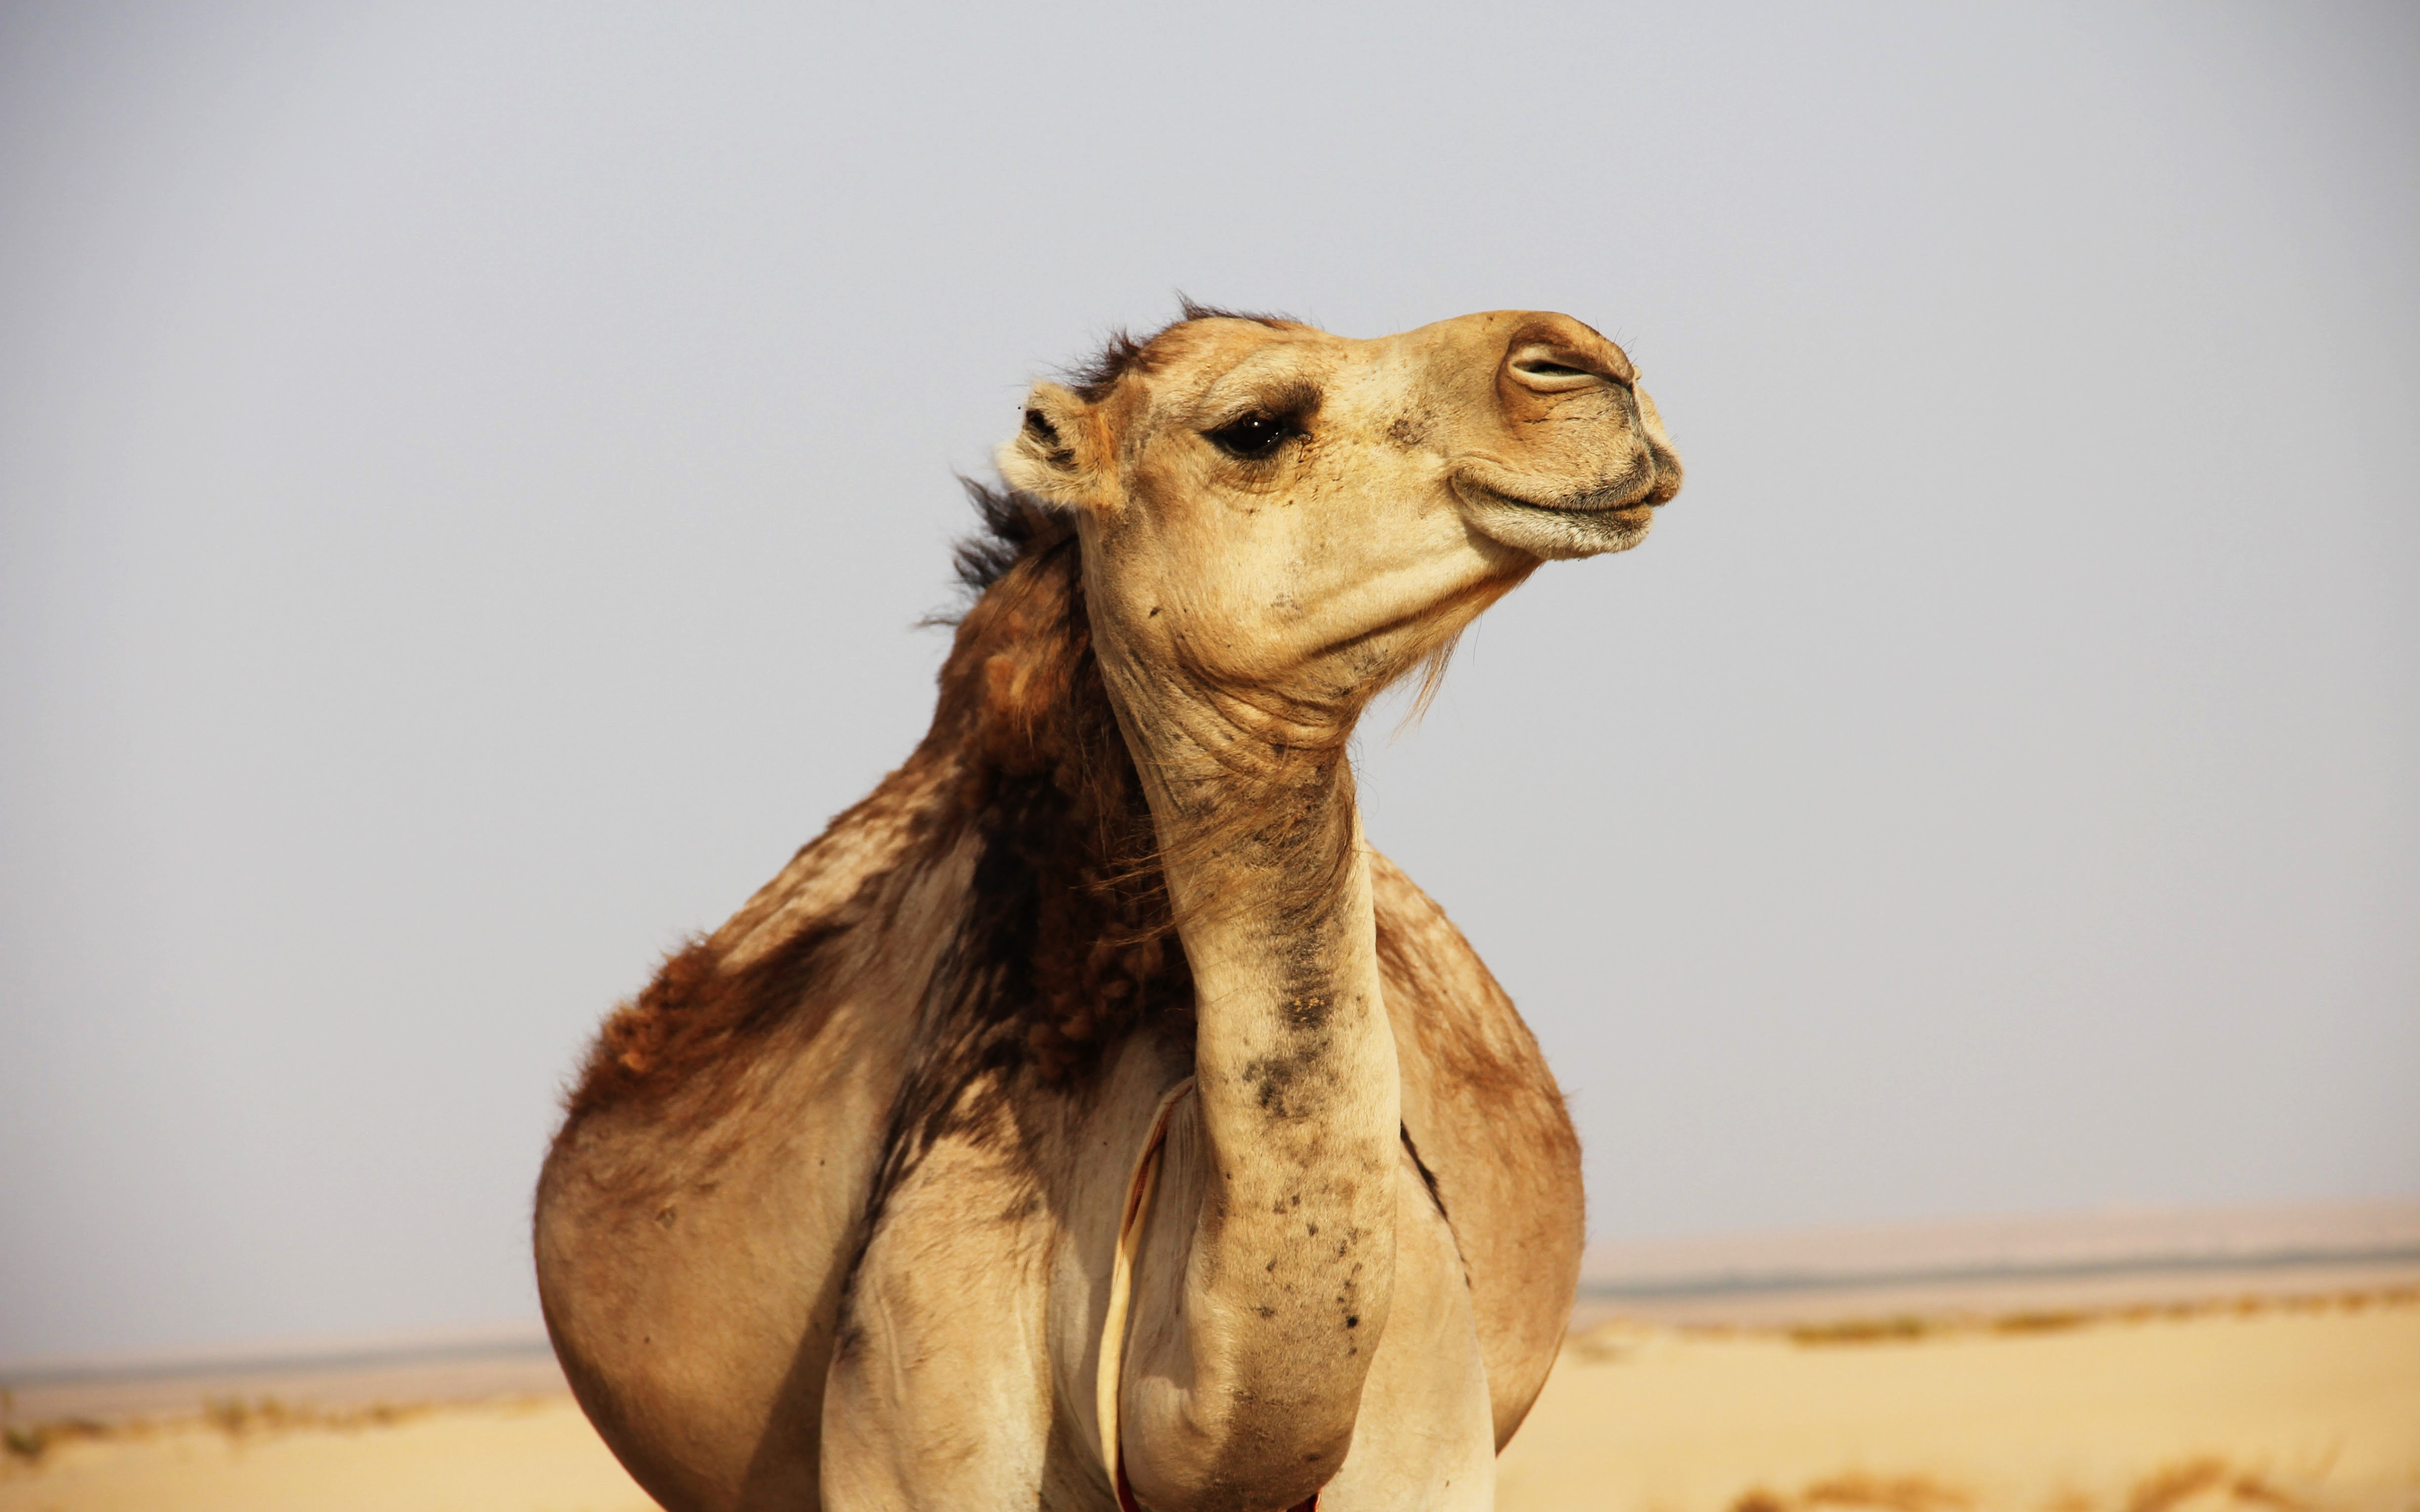 Using camel undertow component for supporting an http2 connection using camel undertow component for supporting an http2 connection dzone integration malvernweather Image collections